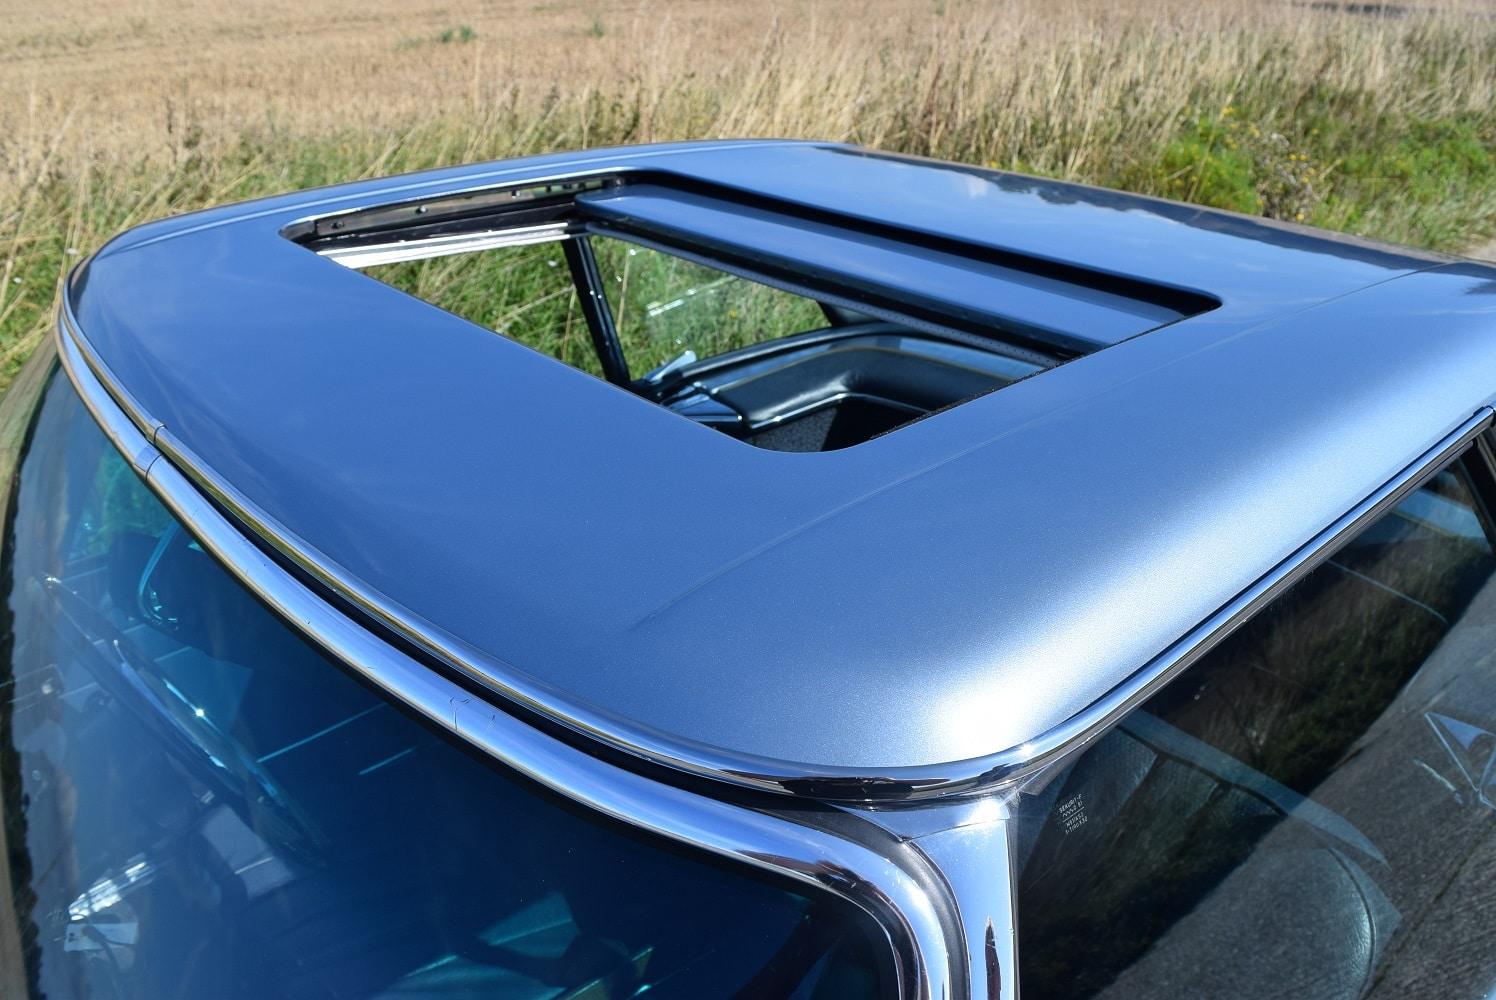 sunroof fitment to Mercedes-Benz 280SL/8 Pagoda hardtop